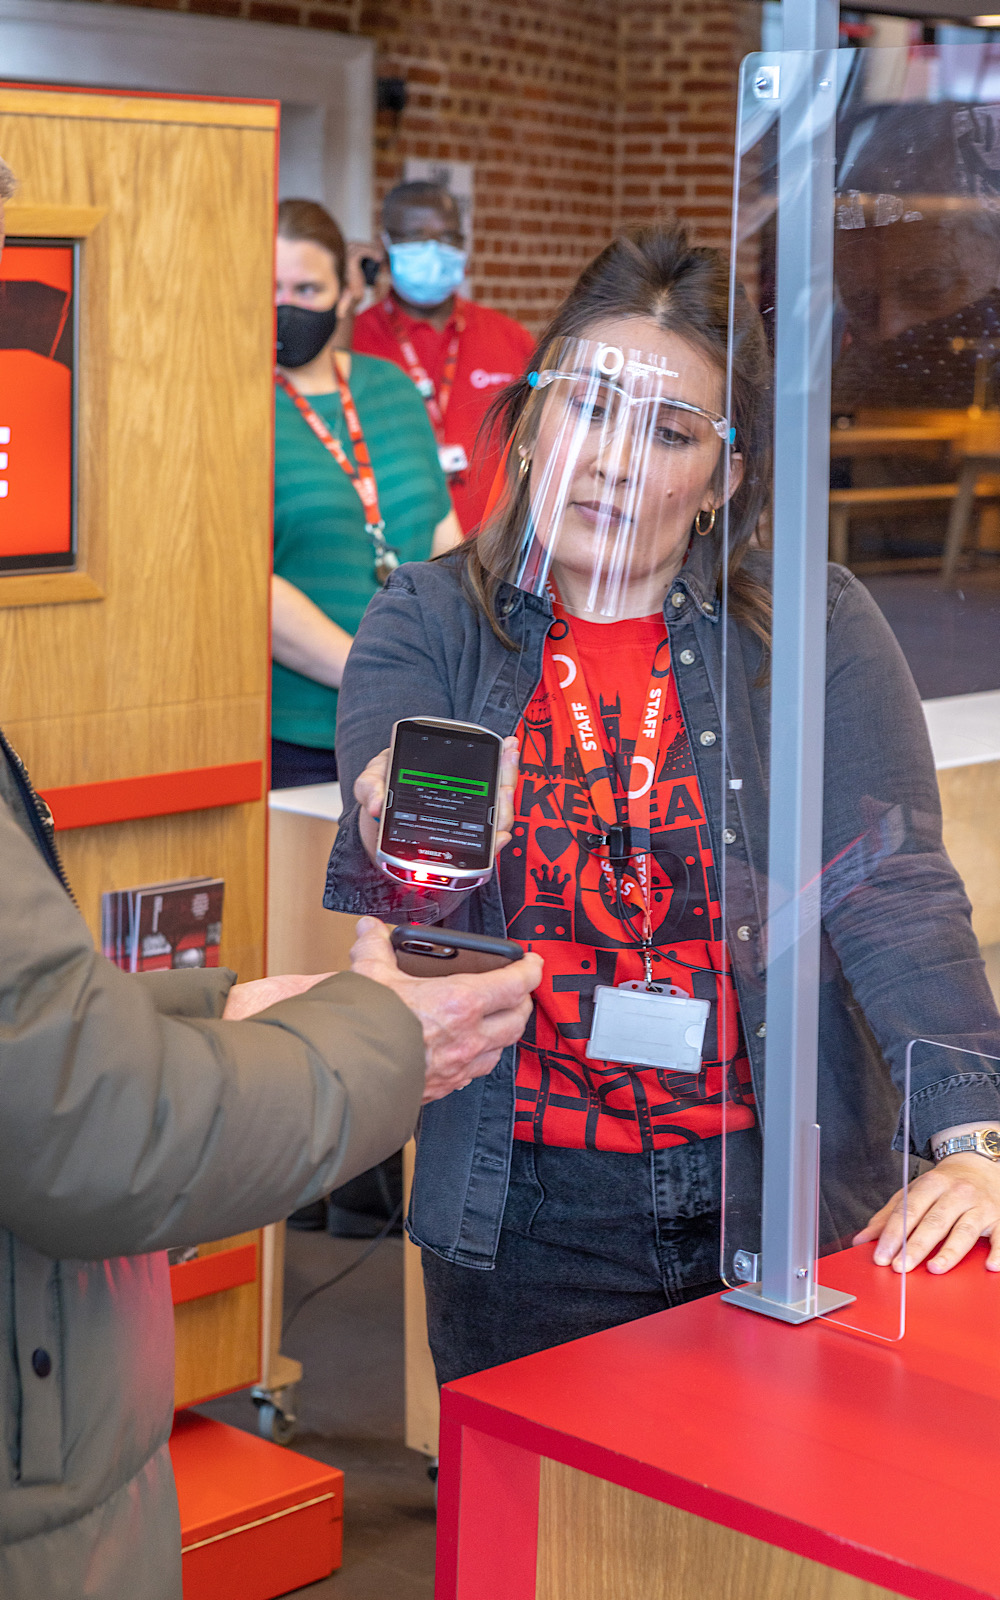 A member of staff in a visor uses a machine to scan a QR code on someone's device